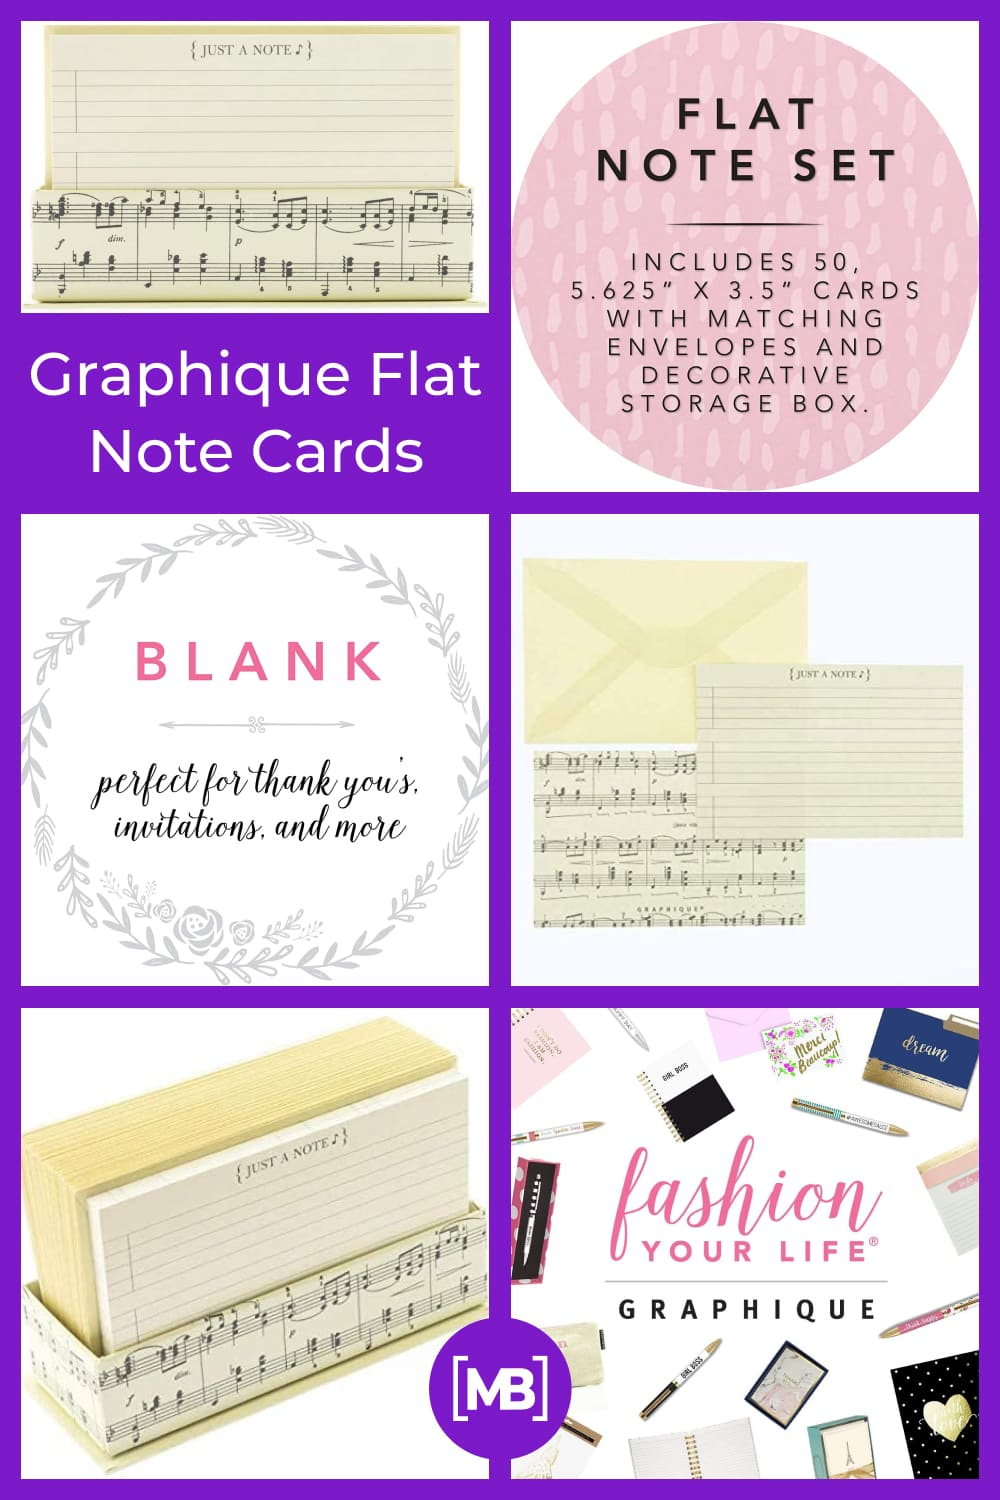 Graphique flat note cards.